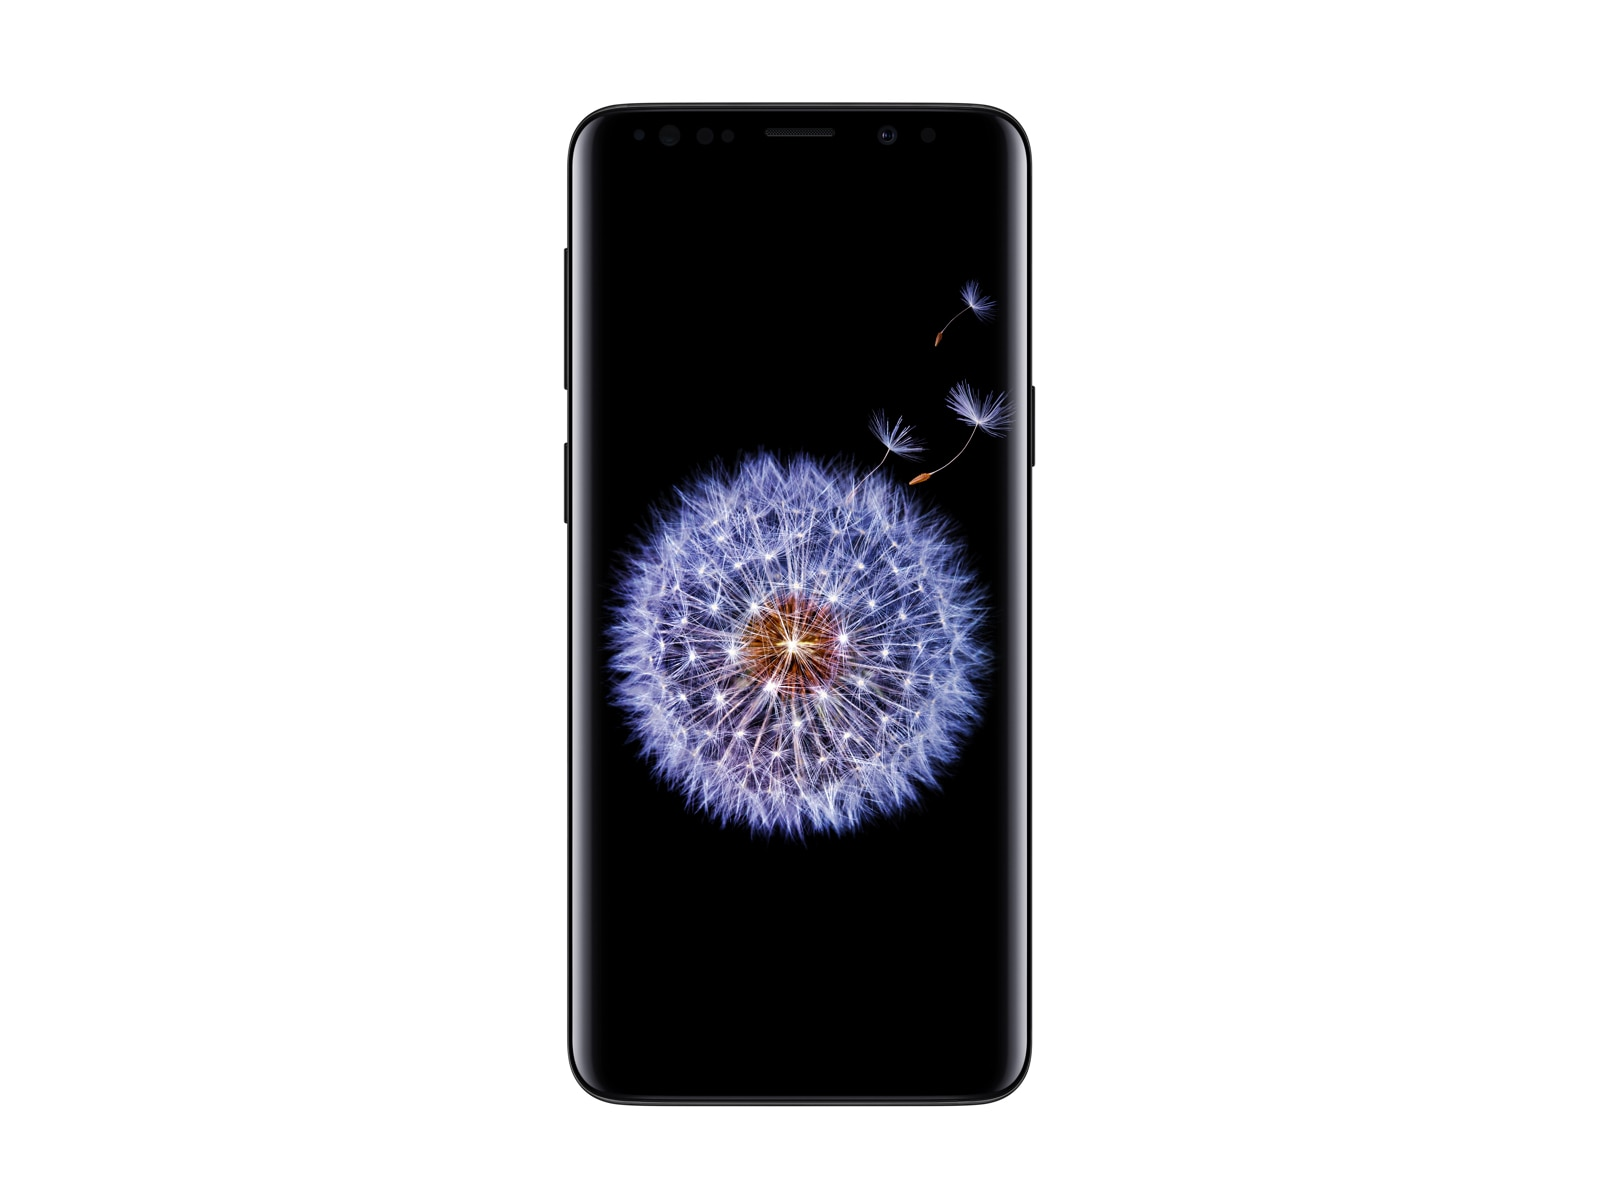 Thumbnail image of Galaxy S9 64GB (US Cellular)